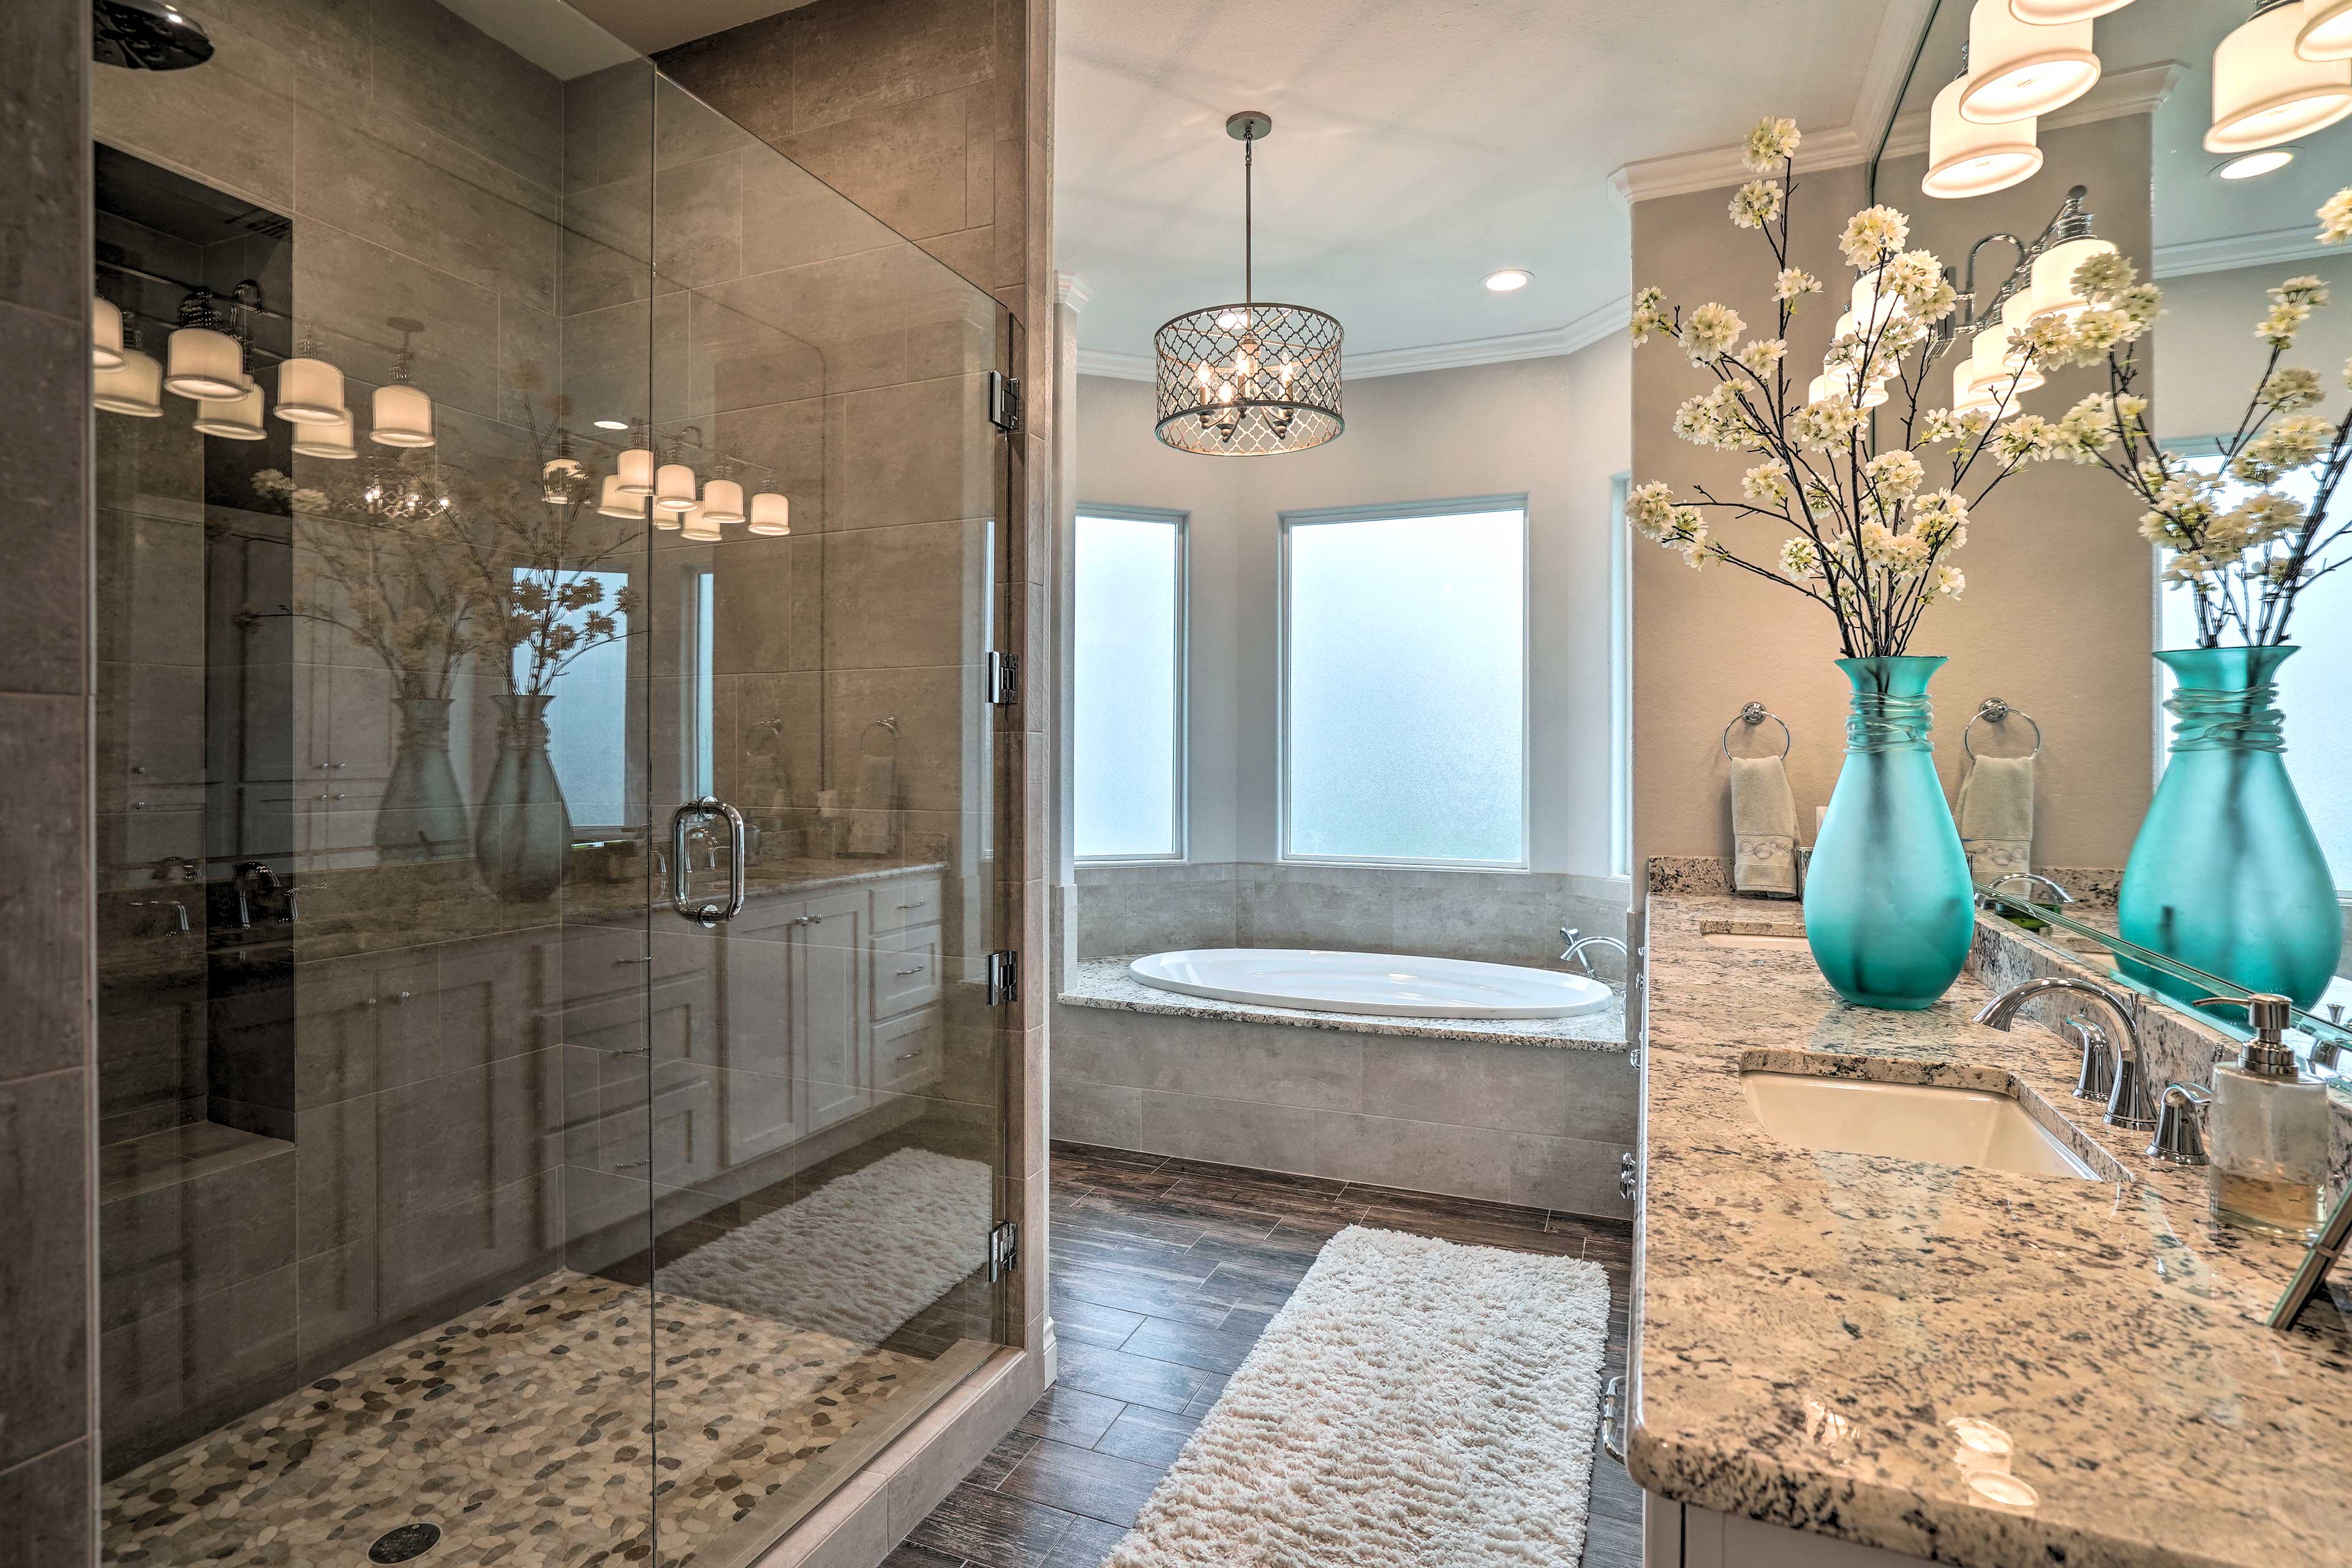 A second bathtub is available as well as this large walk-in shower.